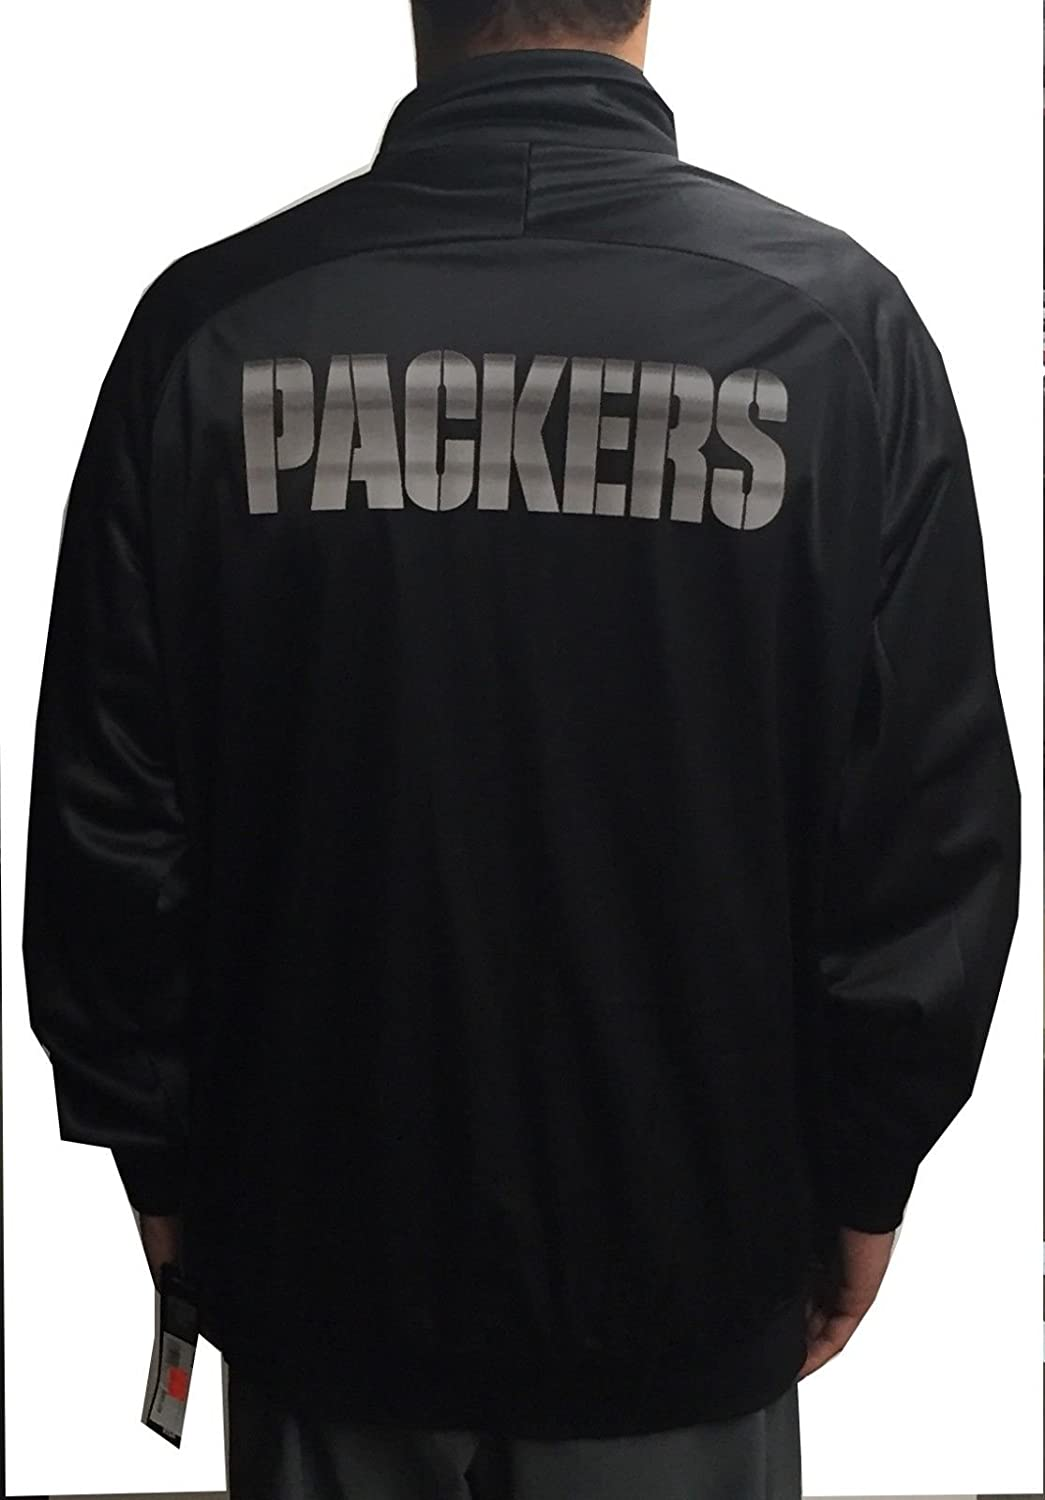 7c62a75b NWT MAJESTIC NFL GREEN BAY PACKERS TRACK JACKET BLACK/SILVER SIZE ...